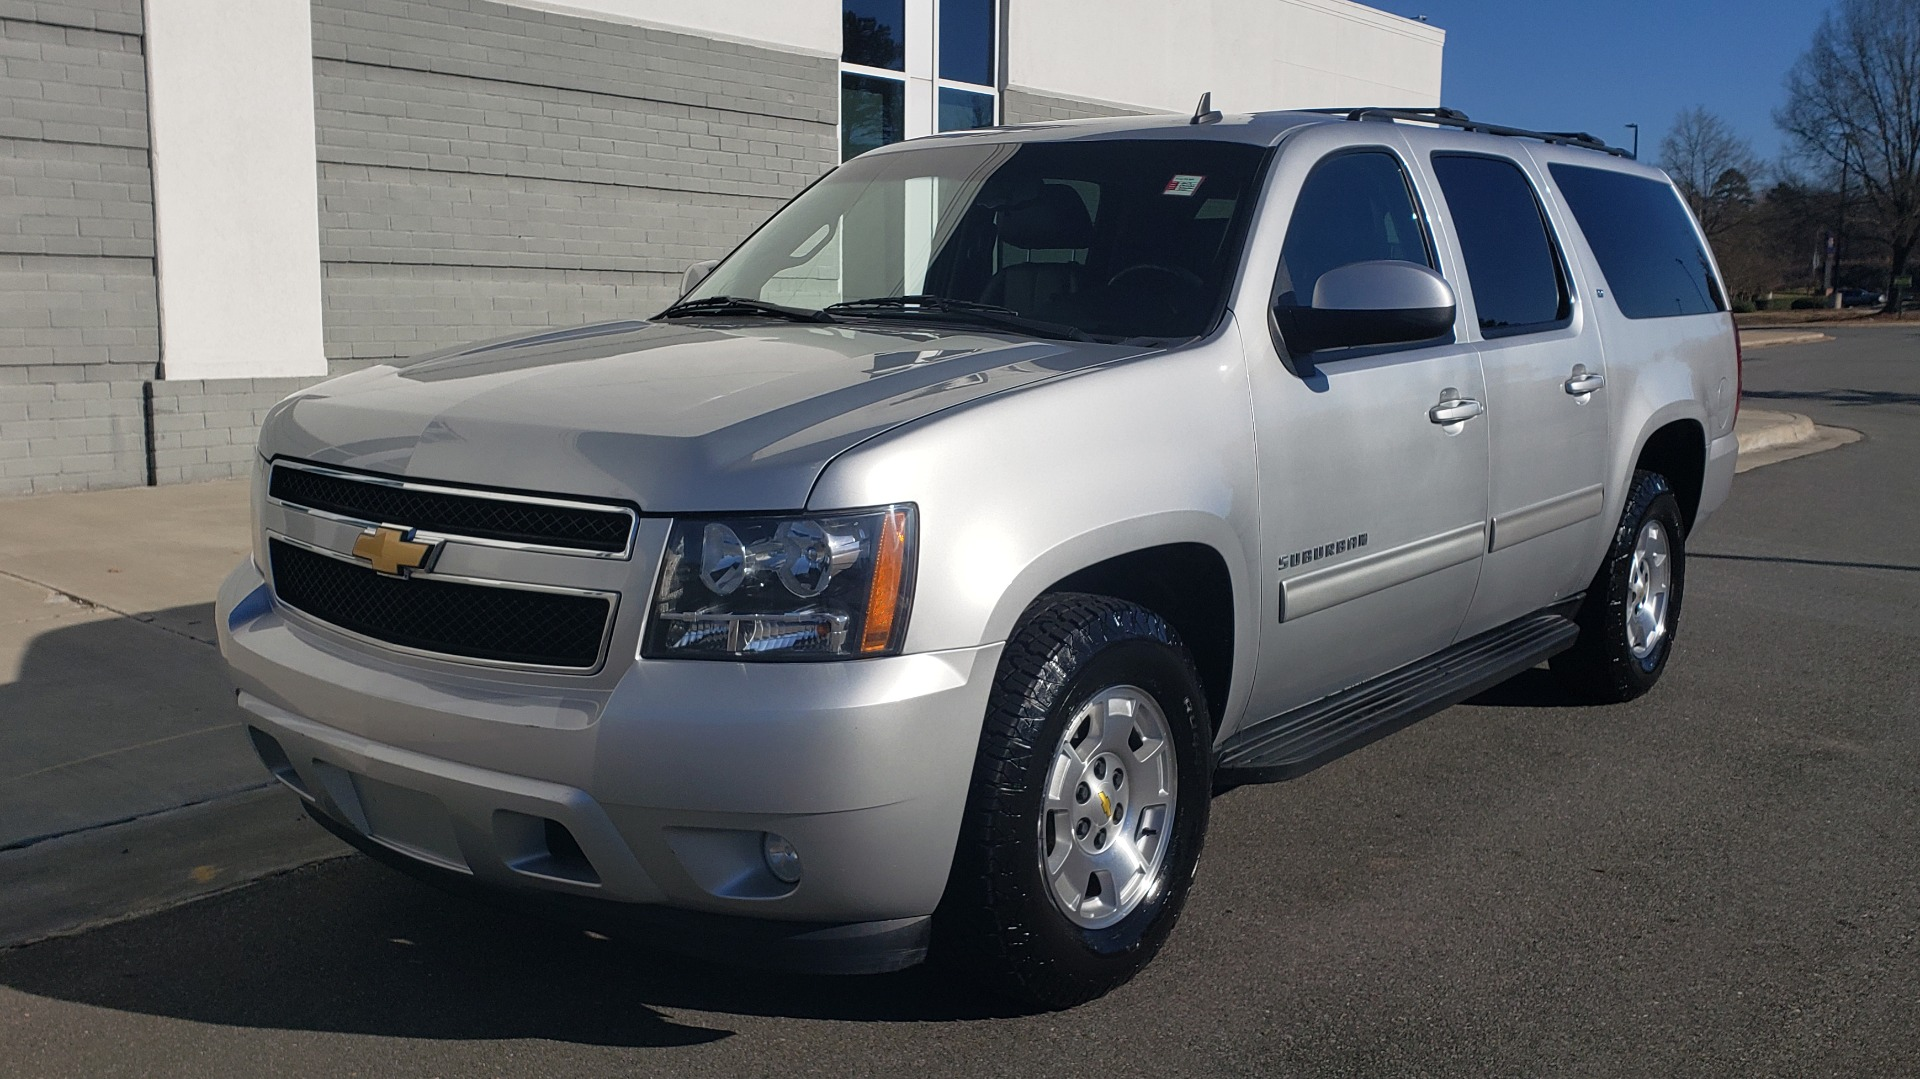 Used 2013 Chevrolet SUBURBAN LT / 2WD / 5.3L V8 / 6-SPD AUTO / LEATHER 3-ROW SEATS for sale Sold at Formula Imports in Charlotte NC 28227 3